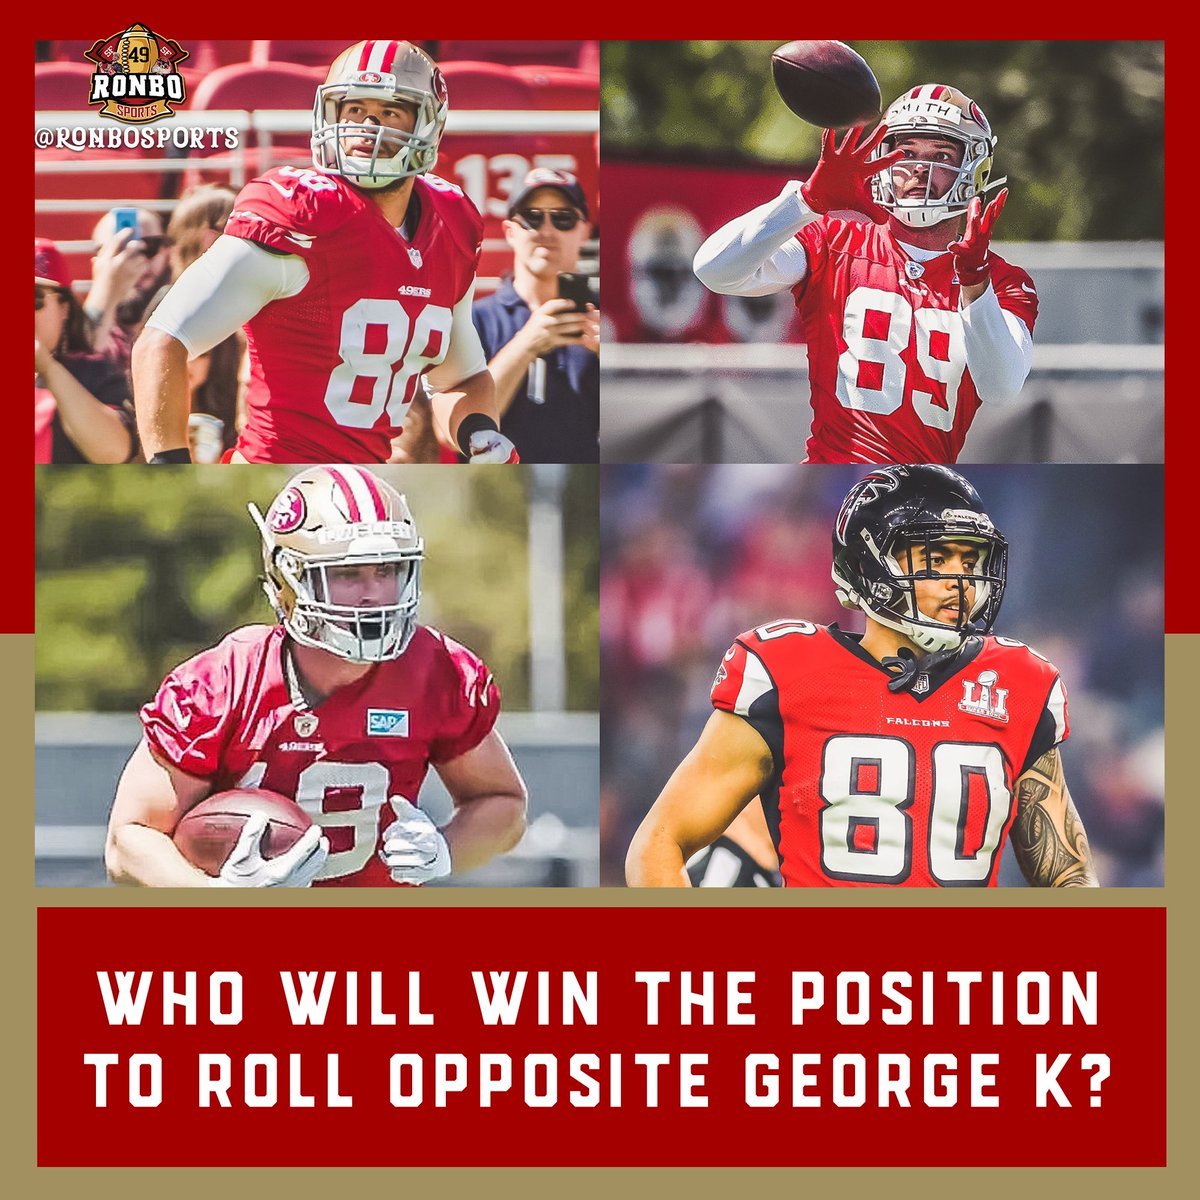 Last year the no.2 TE position was Garrett Celek's to lose. This year the #49ers have added Kaden Smith draft pick from from Stanford, Ross Dwelley is in the mix & recently acquired Levine Toilolo wants the spot. Who will it be?